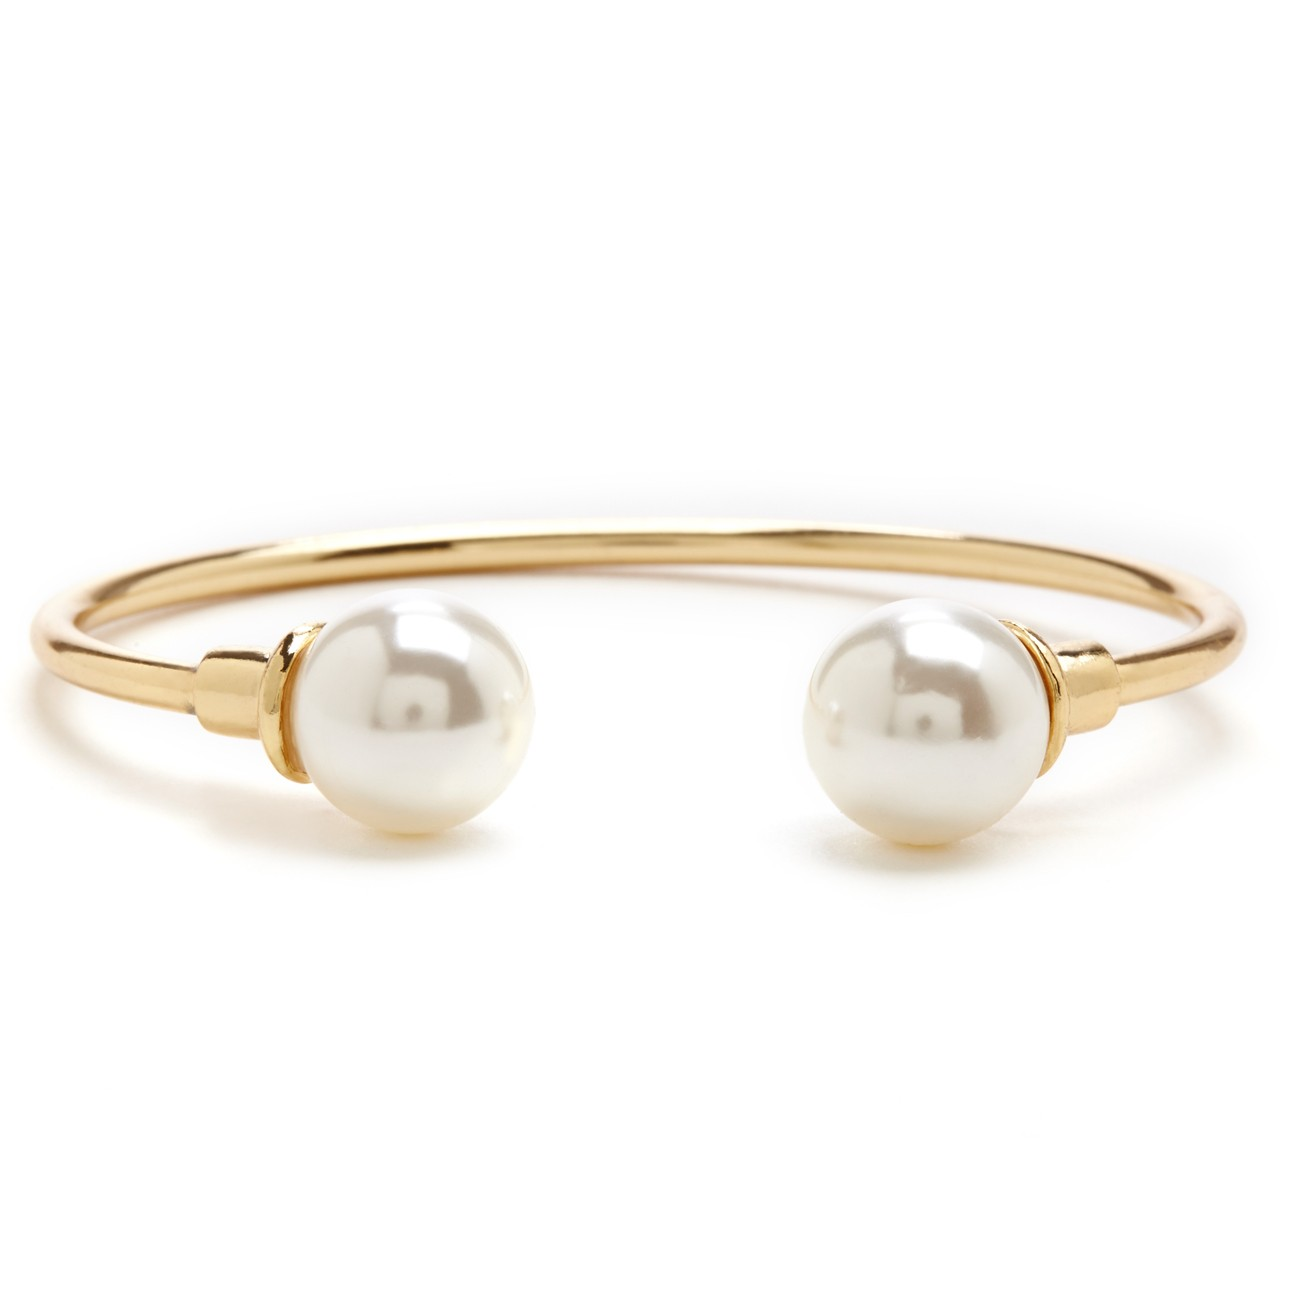 c-shaped pearl bracelet